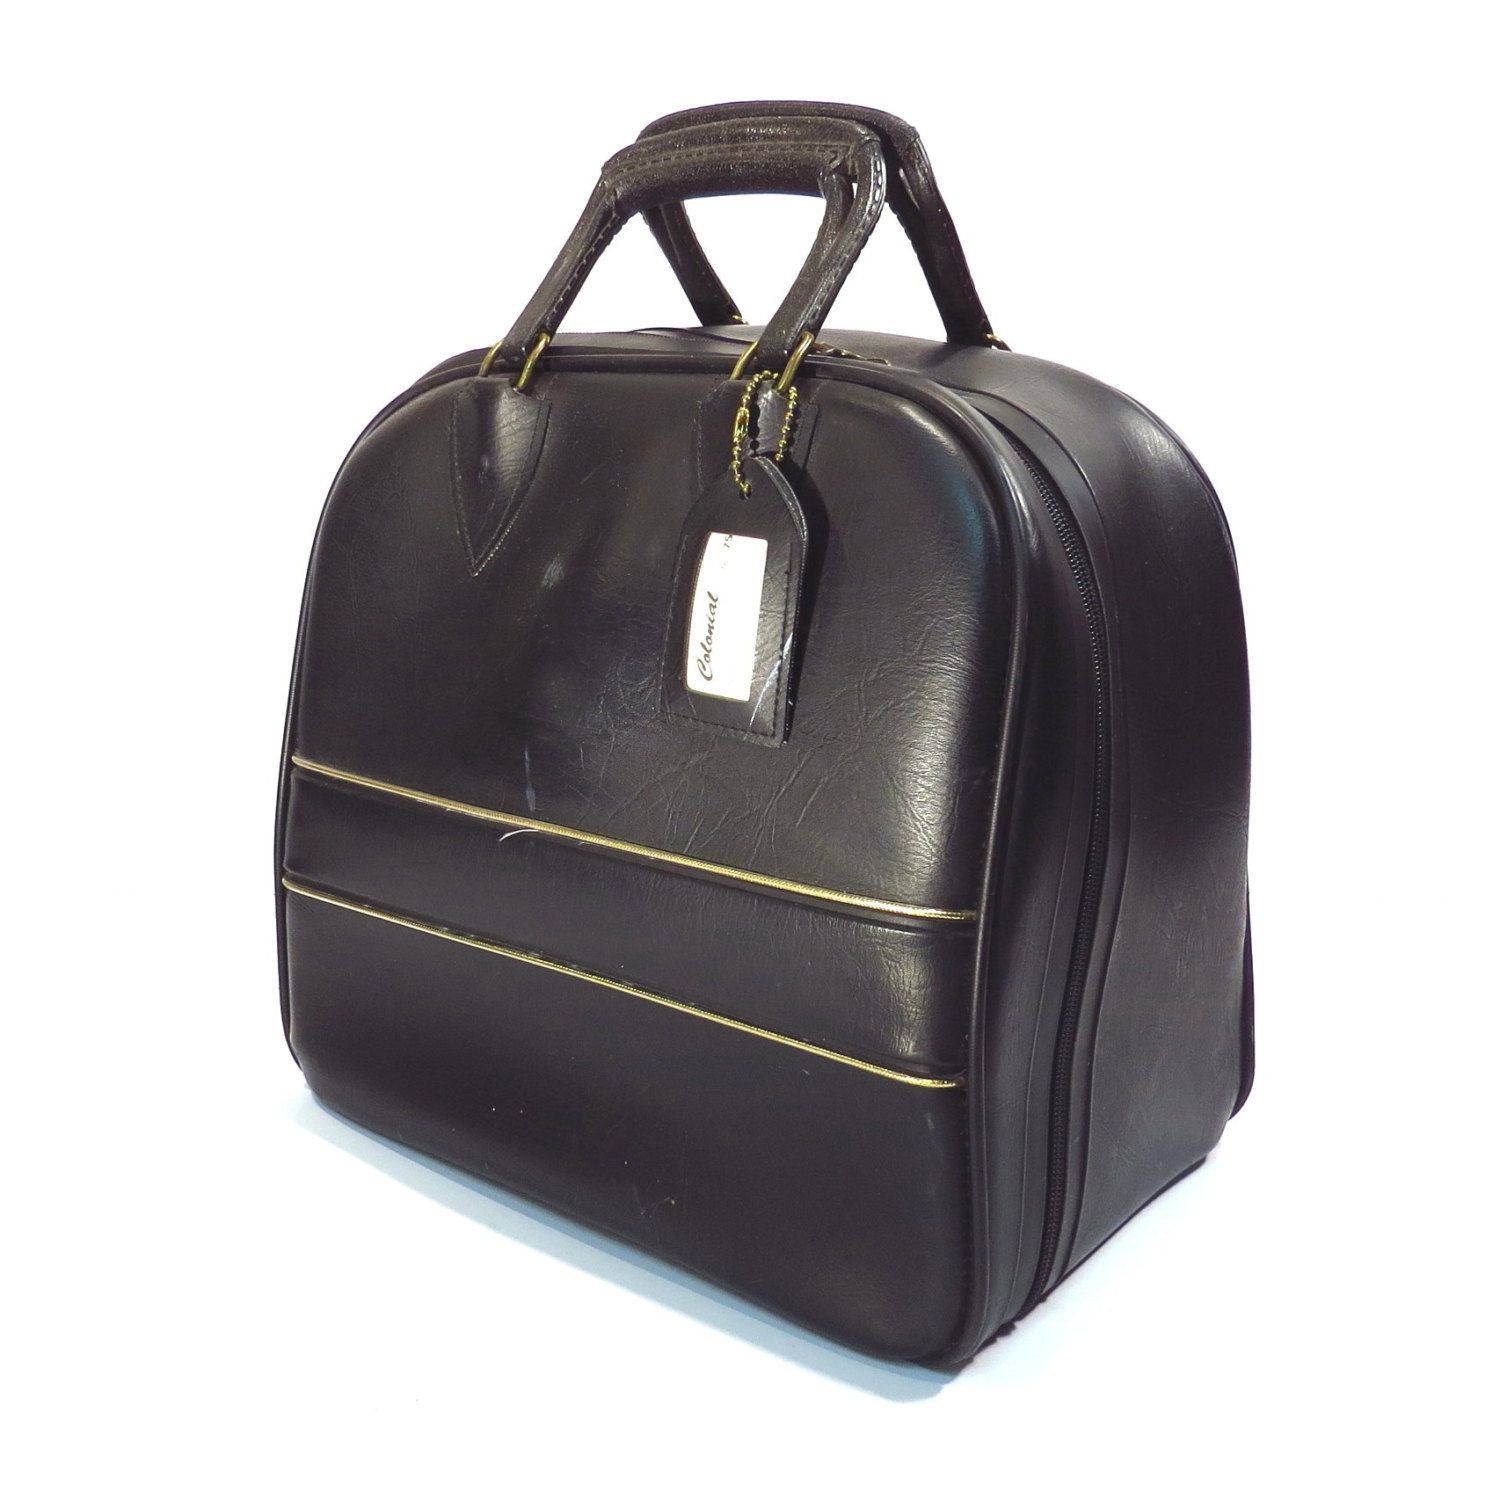 Black Colonial Bowling Bag With Gold Lame Pin Stripe Vintage 1980s Rockabilly Bowling Ball Bag Bowling Ball Bags Bowling Bags Vintage Purses